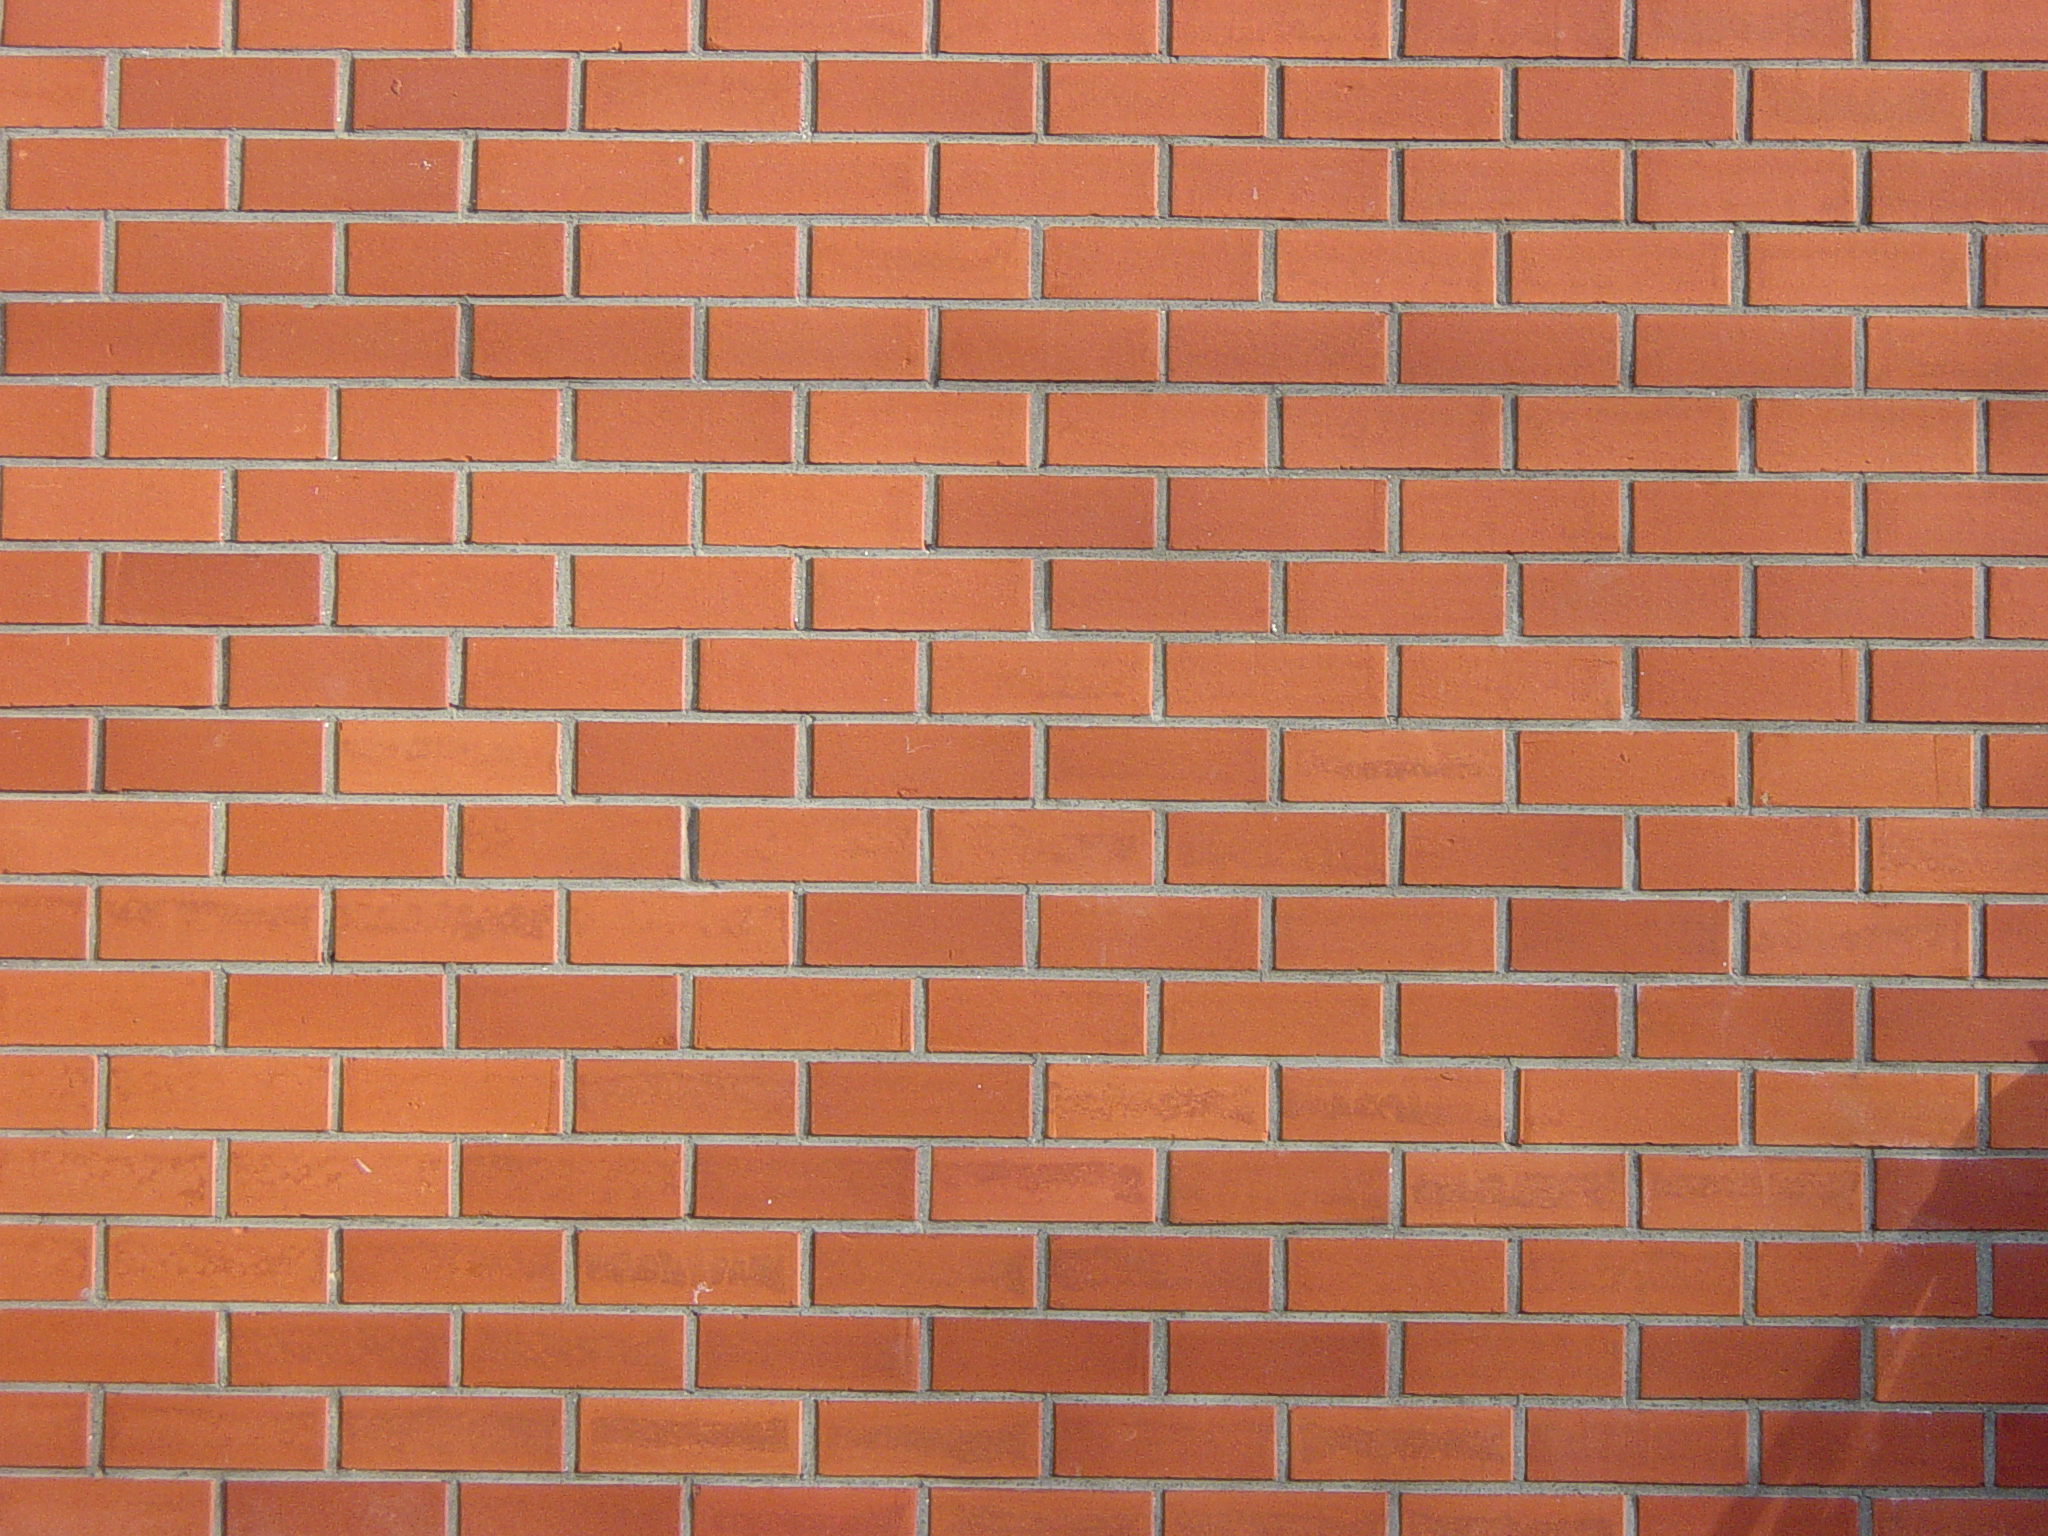 brickwall | Explore brickwall on DeviantArt